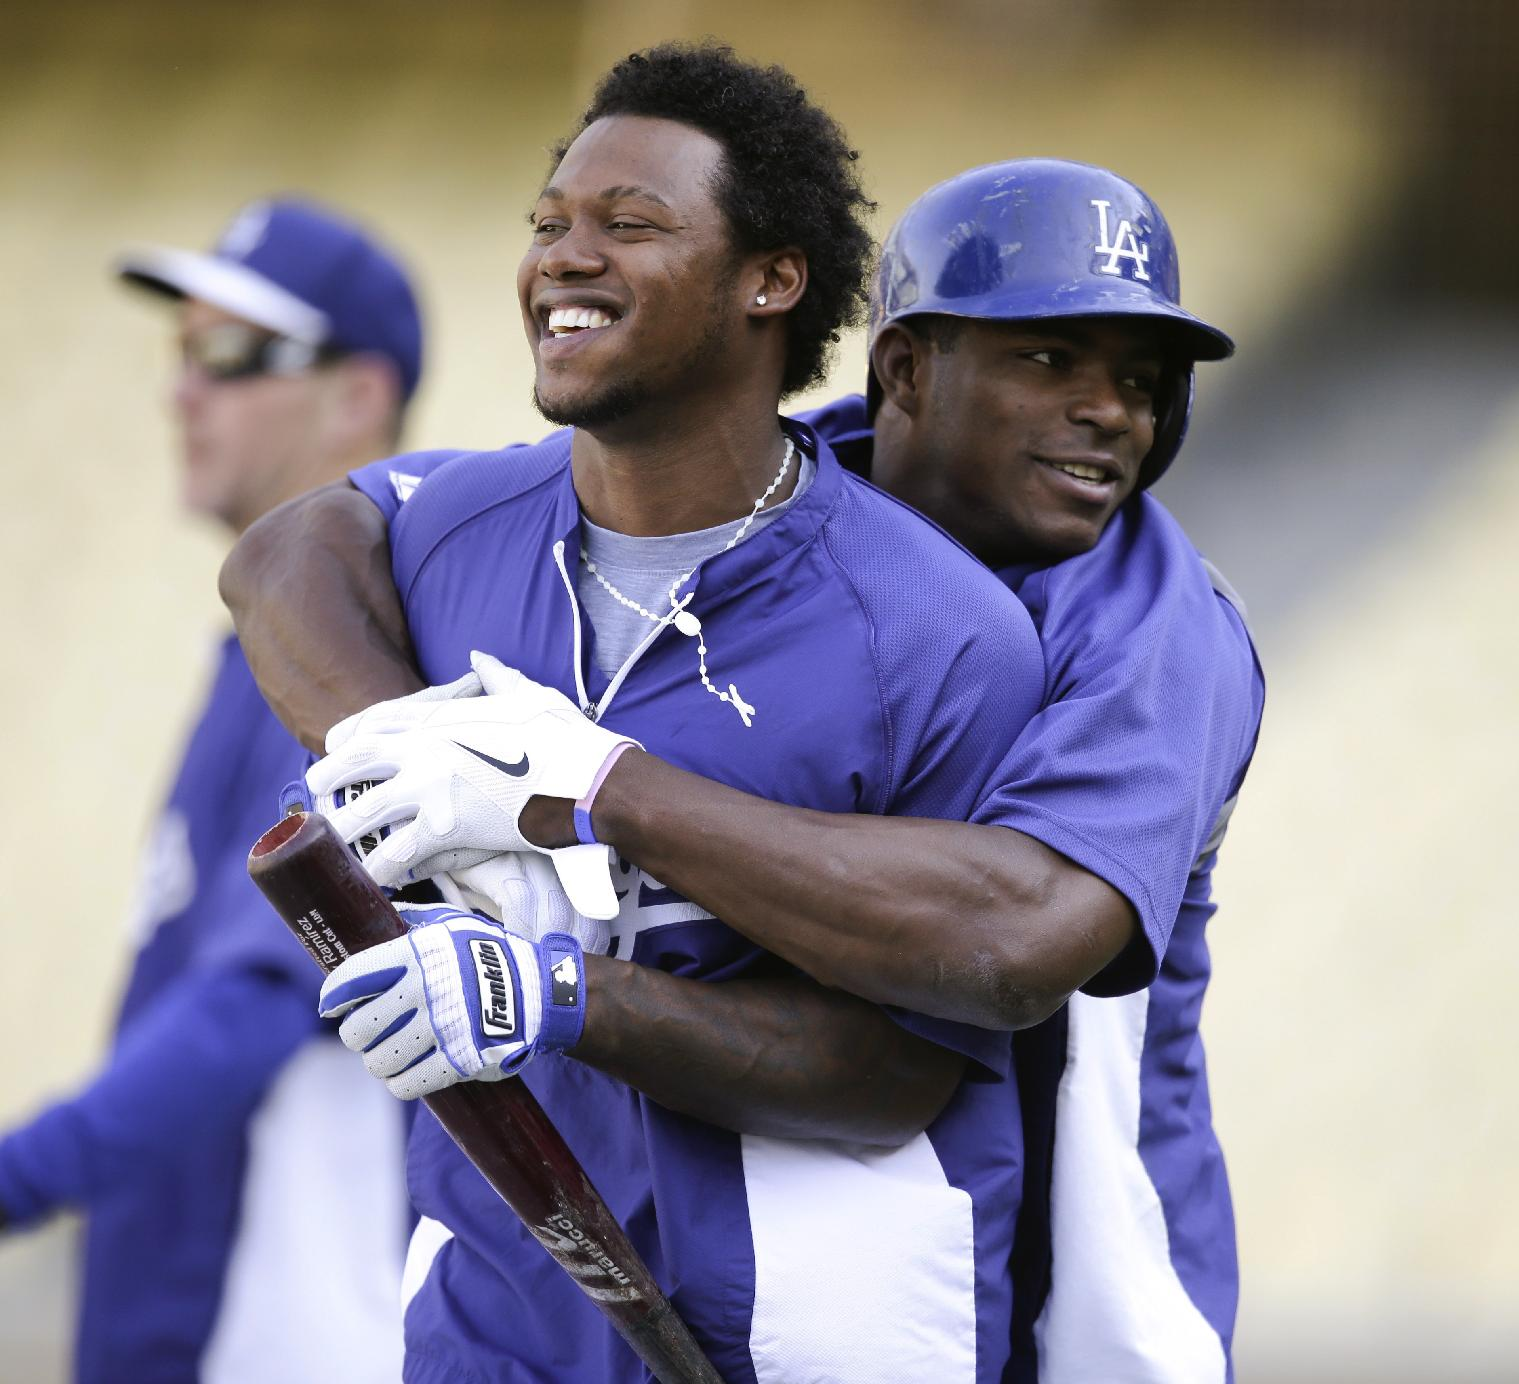 Los Angeles Dodgers' Yasiel Puig, right, jokes around with Hanley Ramirez during practice for a baseball game against the San Francisco Giants on Thursday, Sept. 12, 2013, in Los Angeles